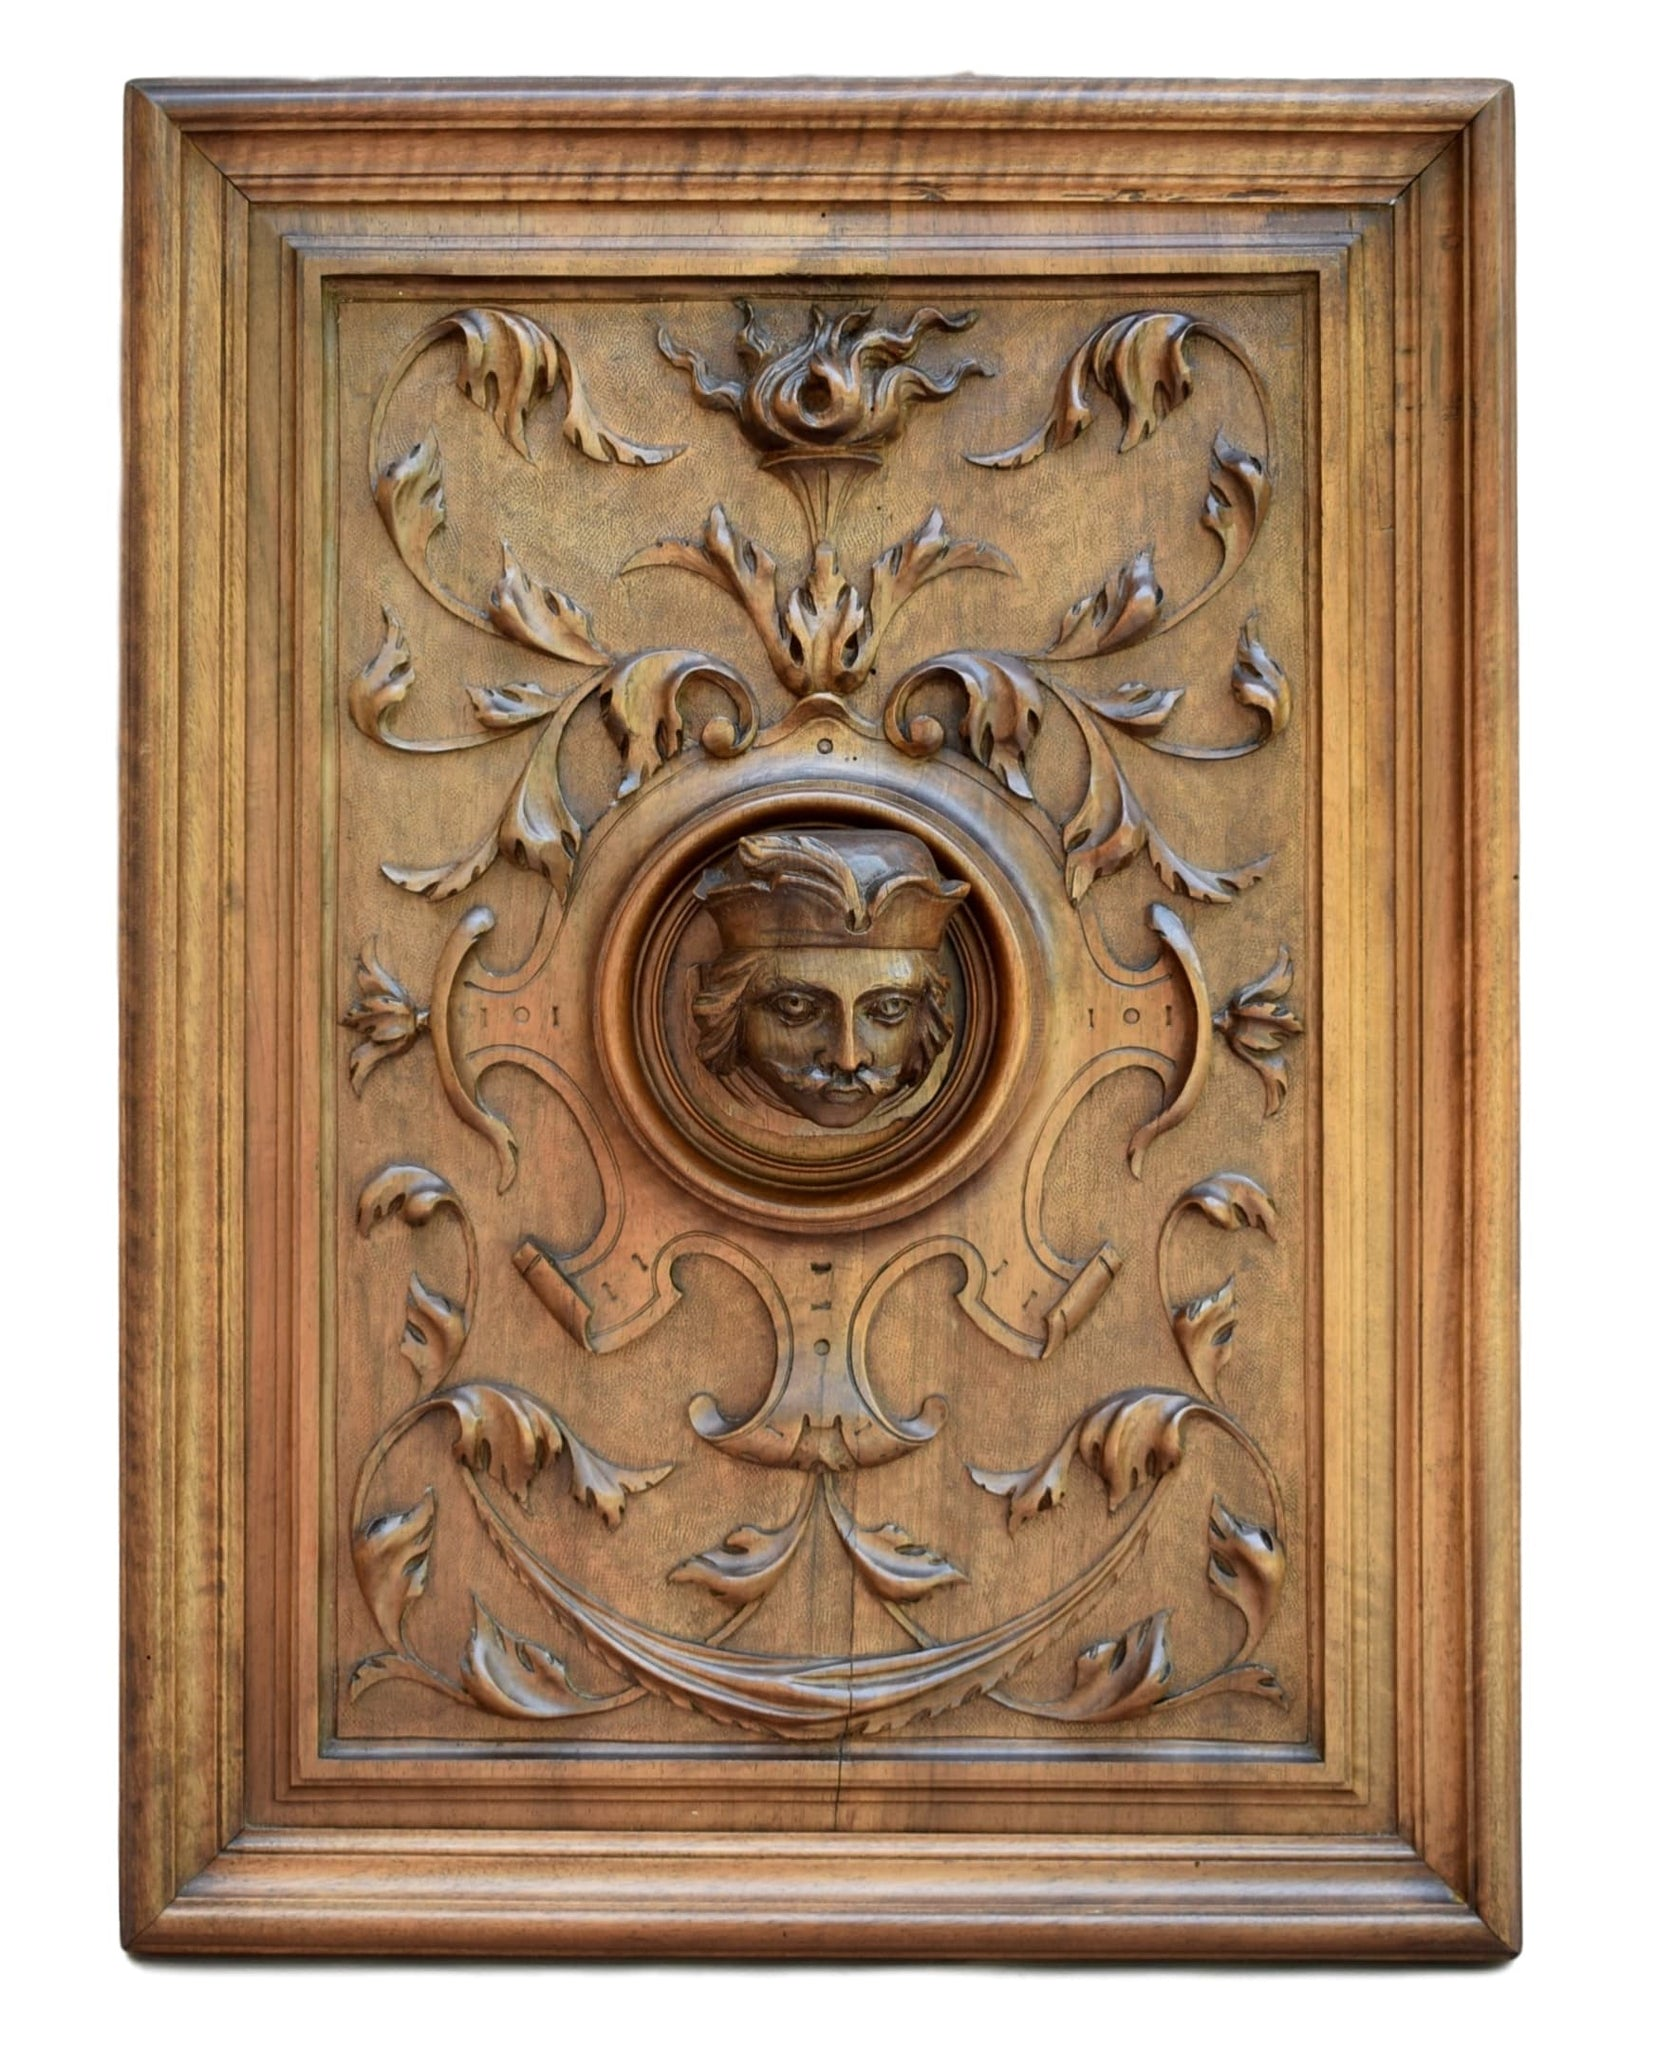 Carved Wood Panel : the King - Charmantiques